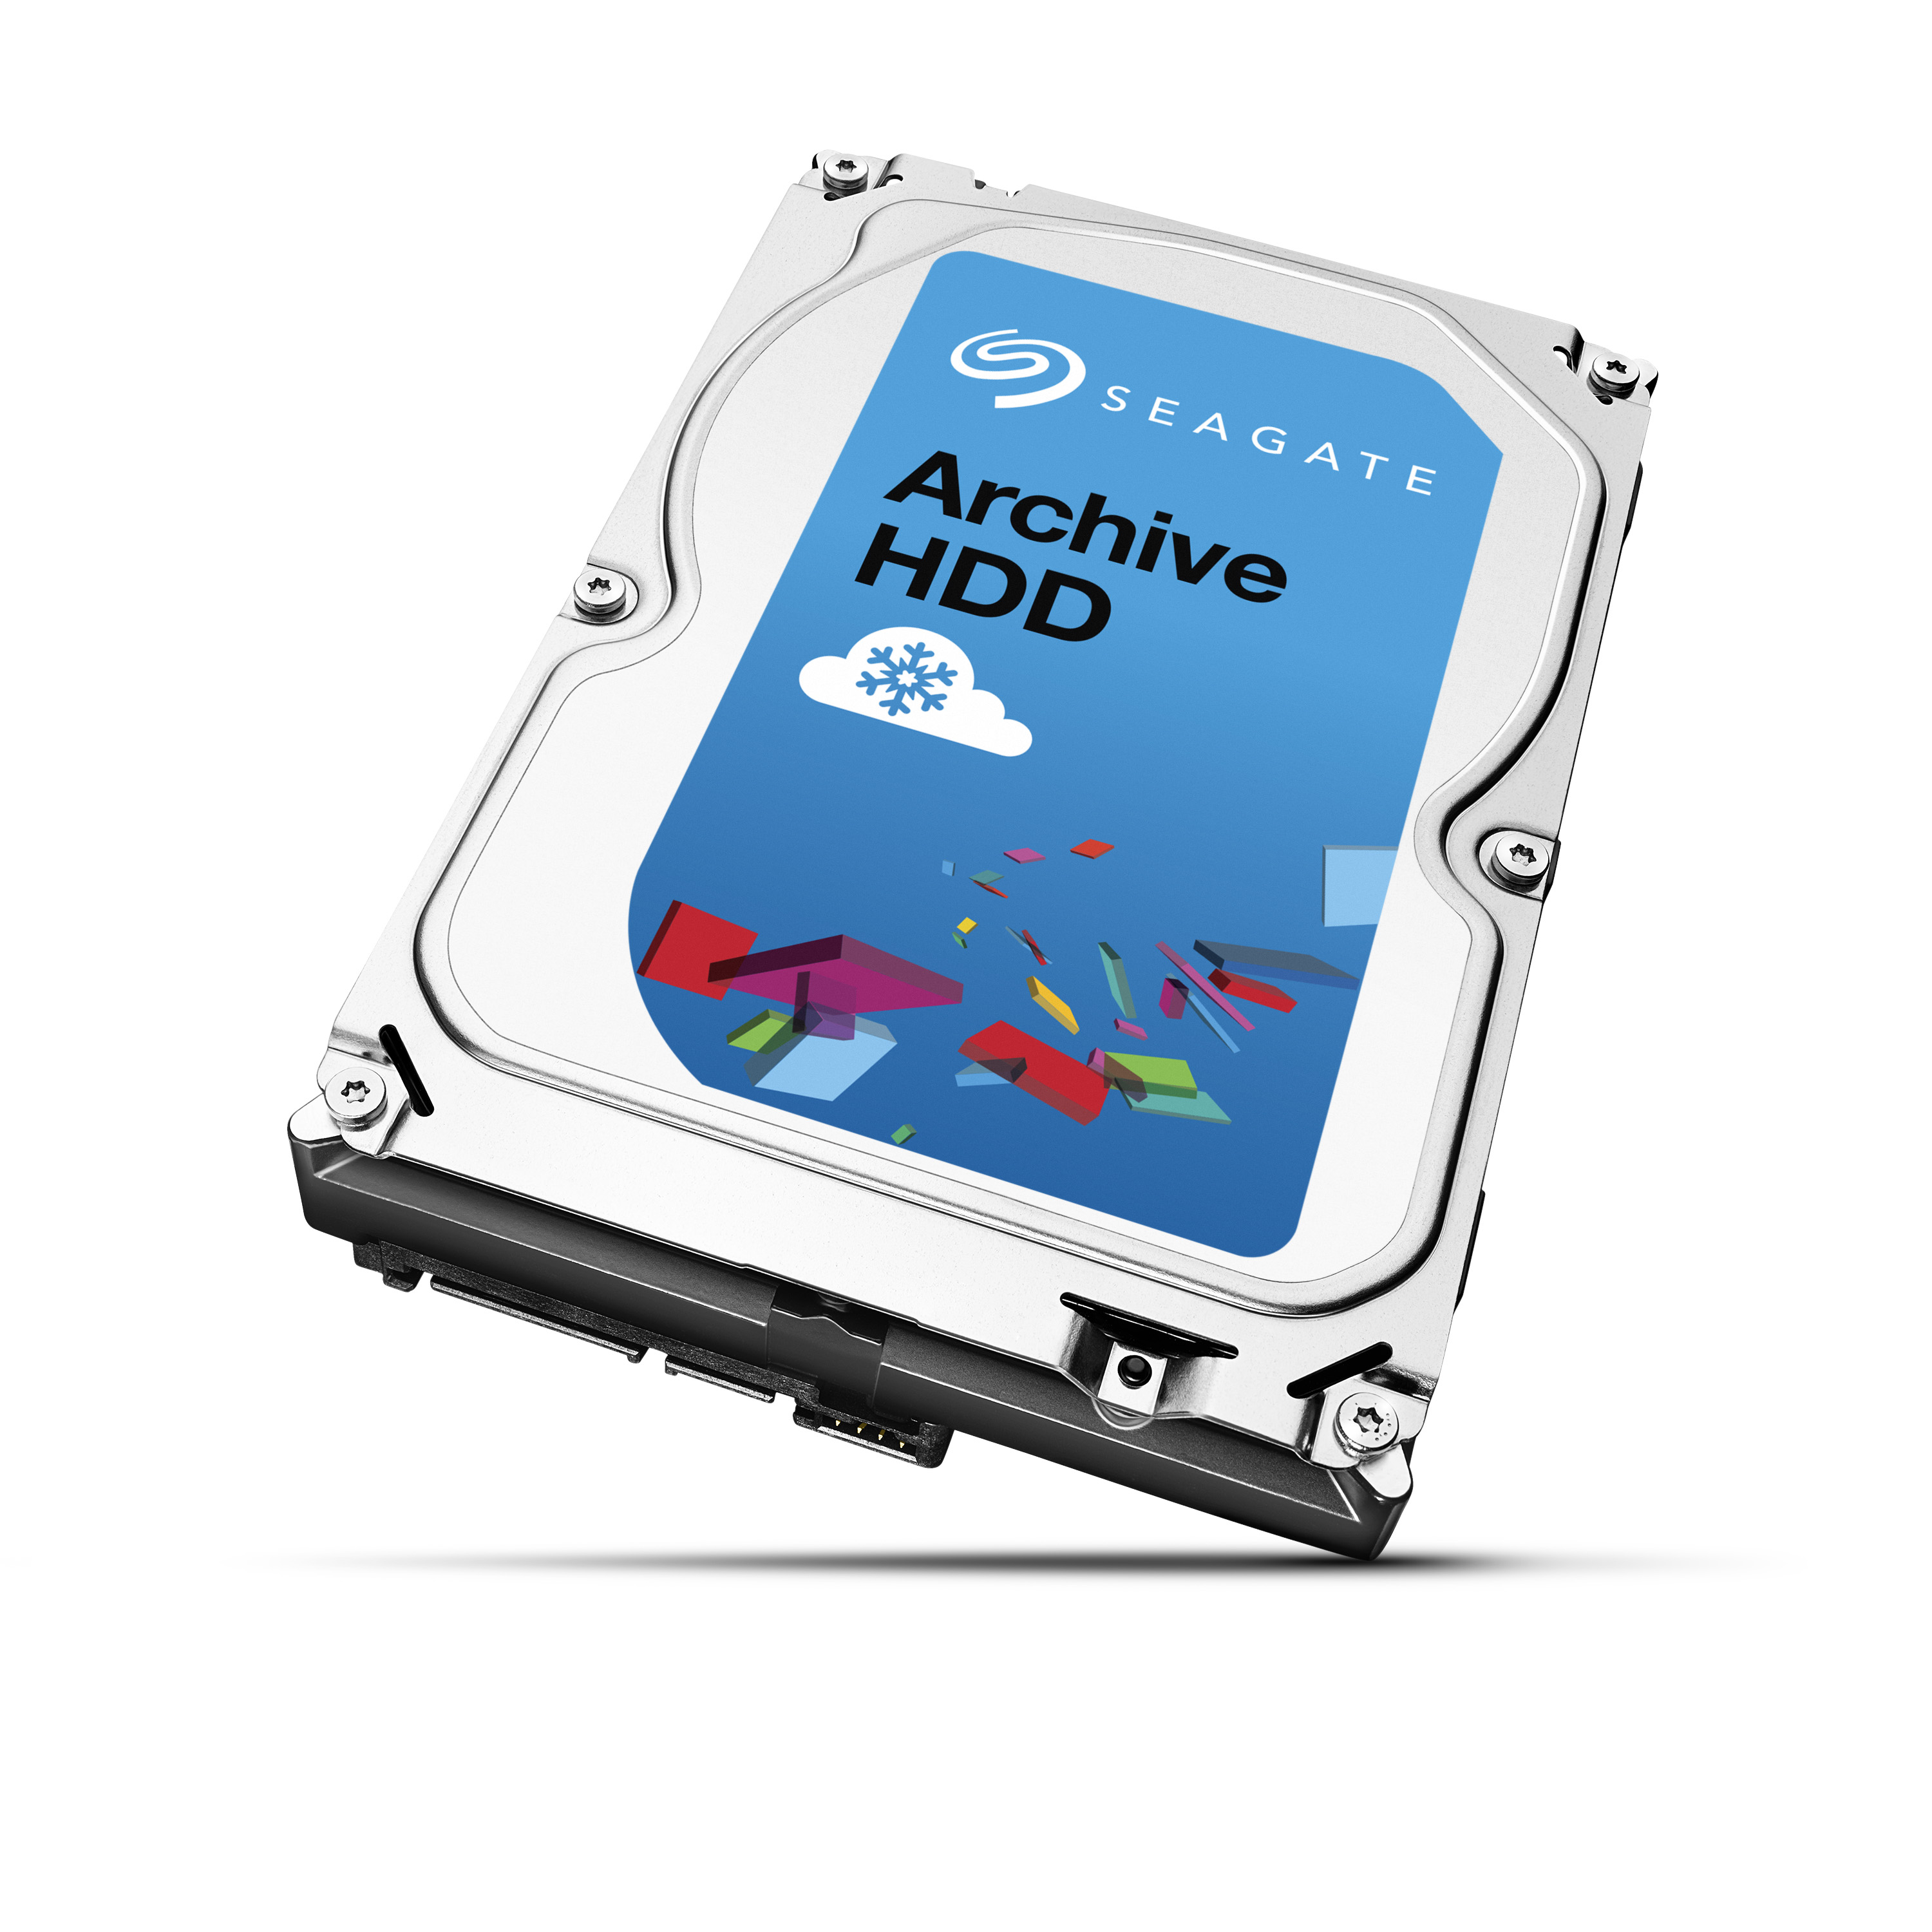 "Seagate Archive HDD, 6TB, 3.5"", SATAIII, 128MB cache, 5.900RPM"